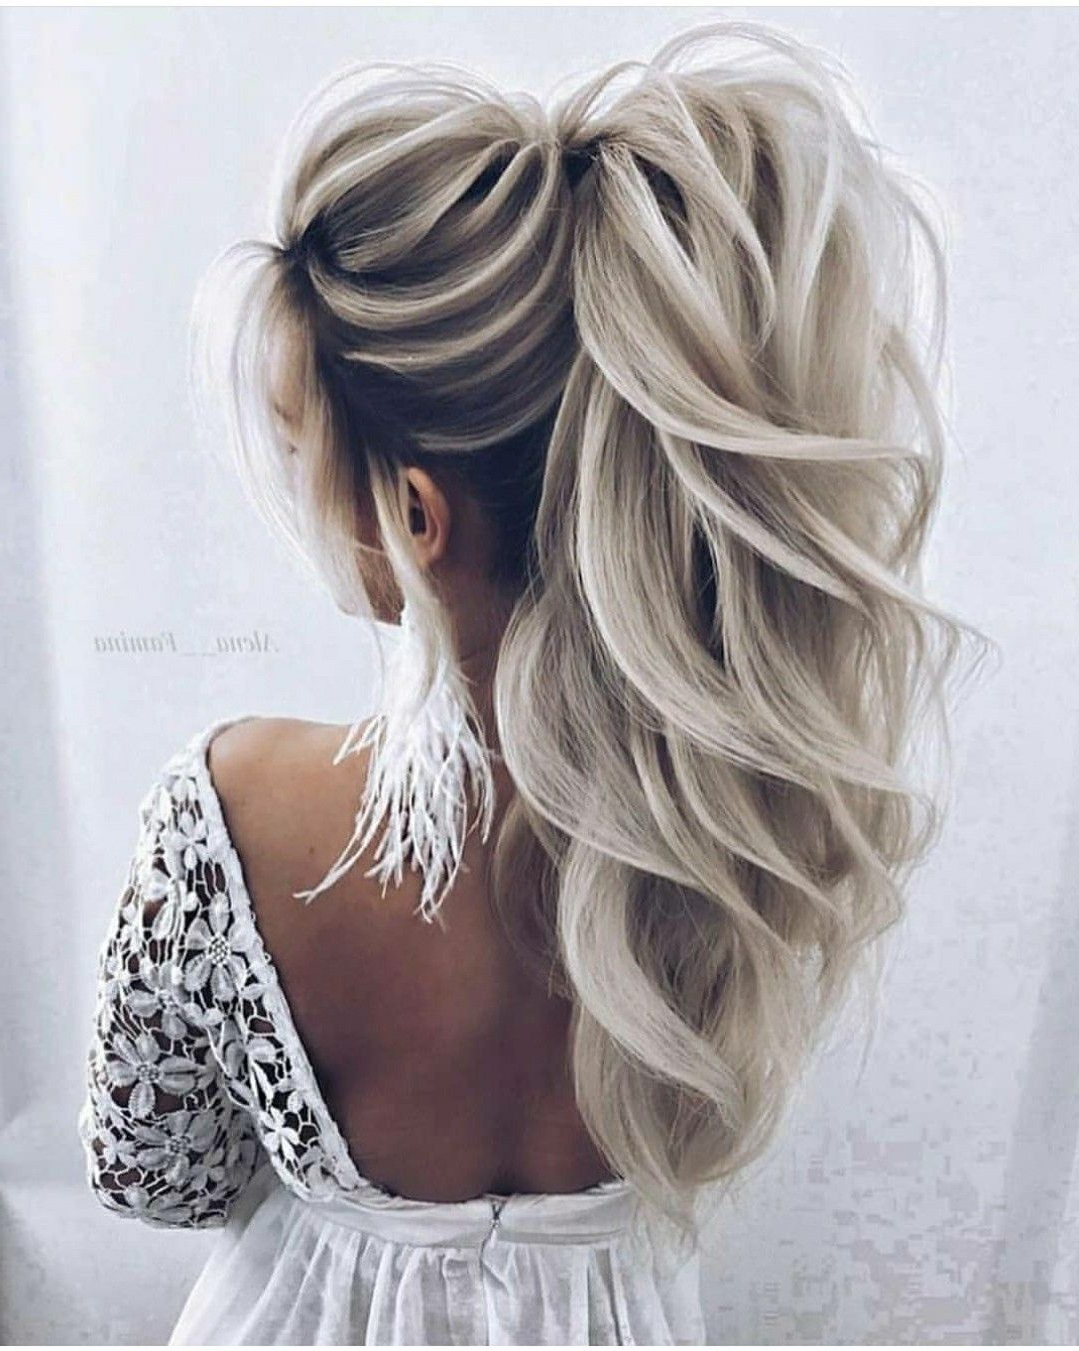 Hair Styles, Hair, Hair Pertaining To Well Known Messy Voluminous Ponytail Hairstyles With Textured Bangs (View 8 of 20)